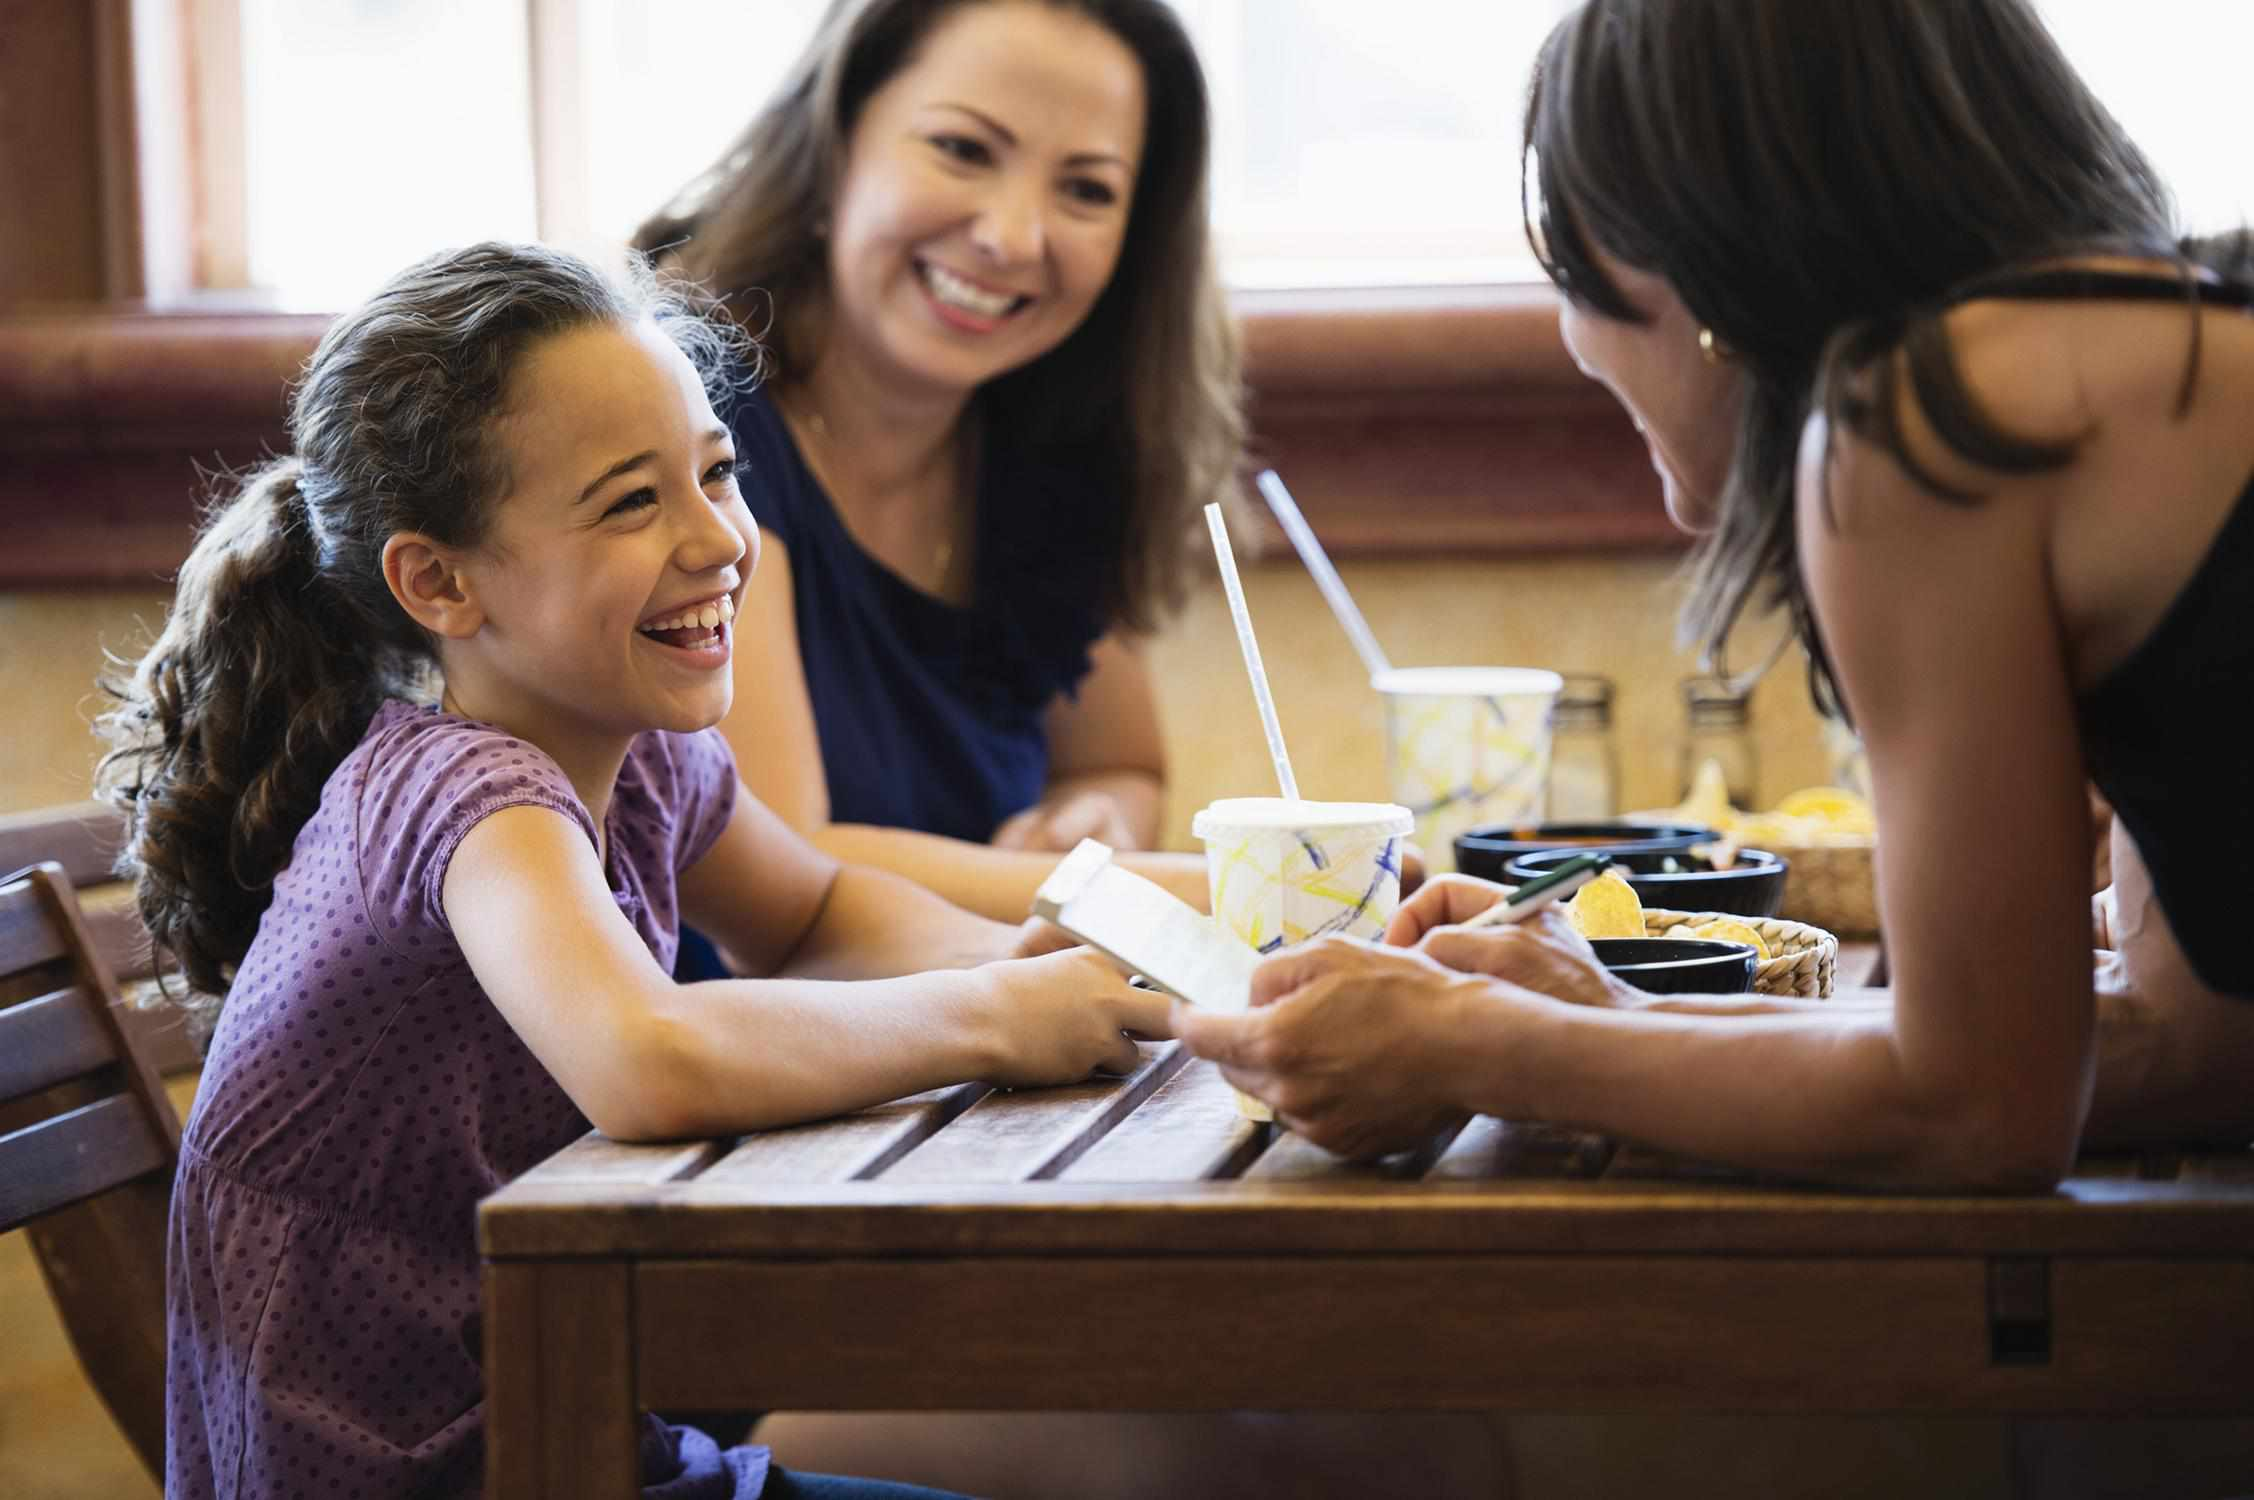 child ordering at a restaurant with her mother